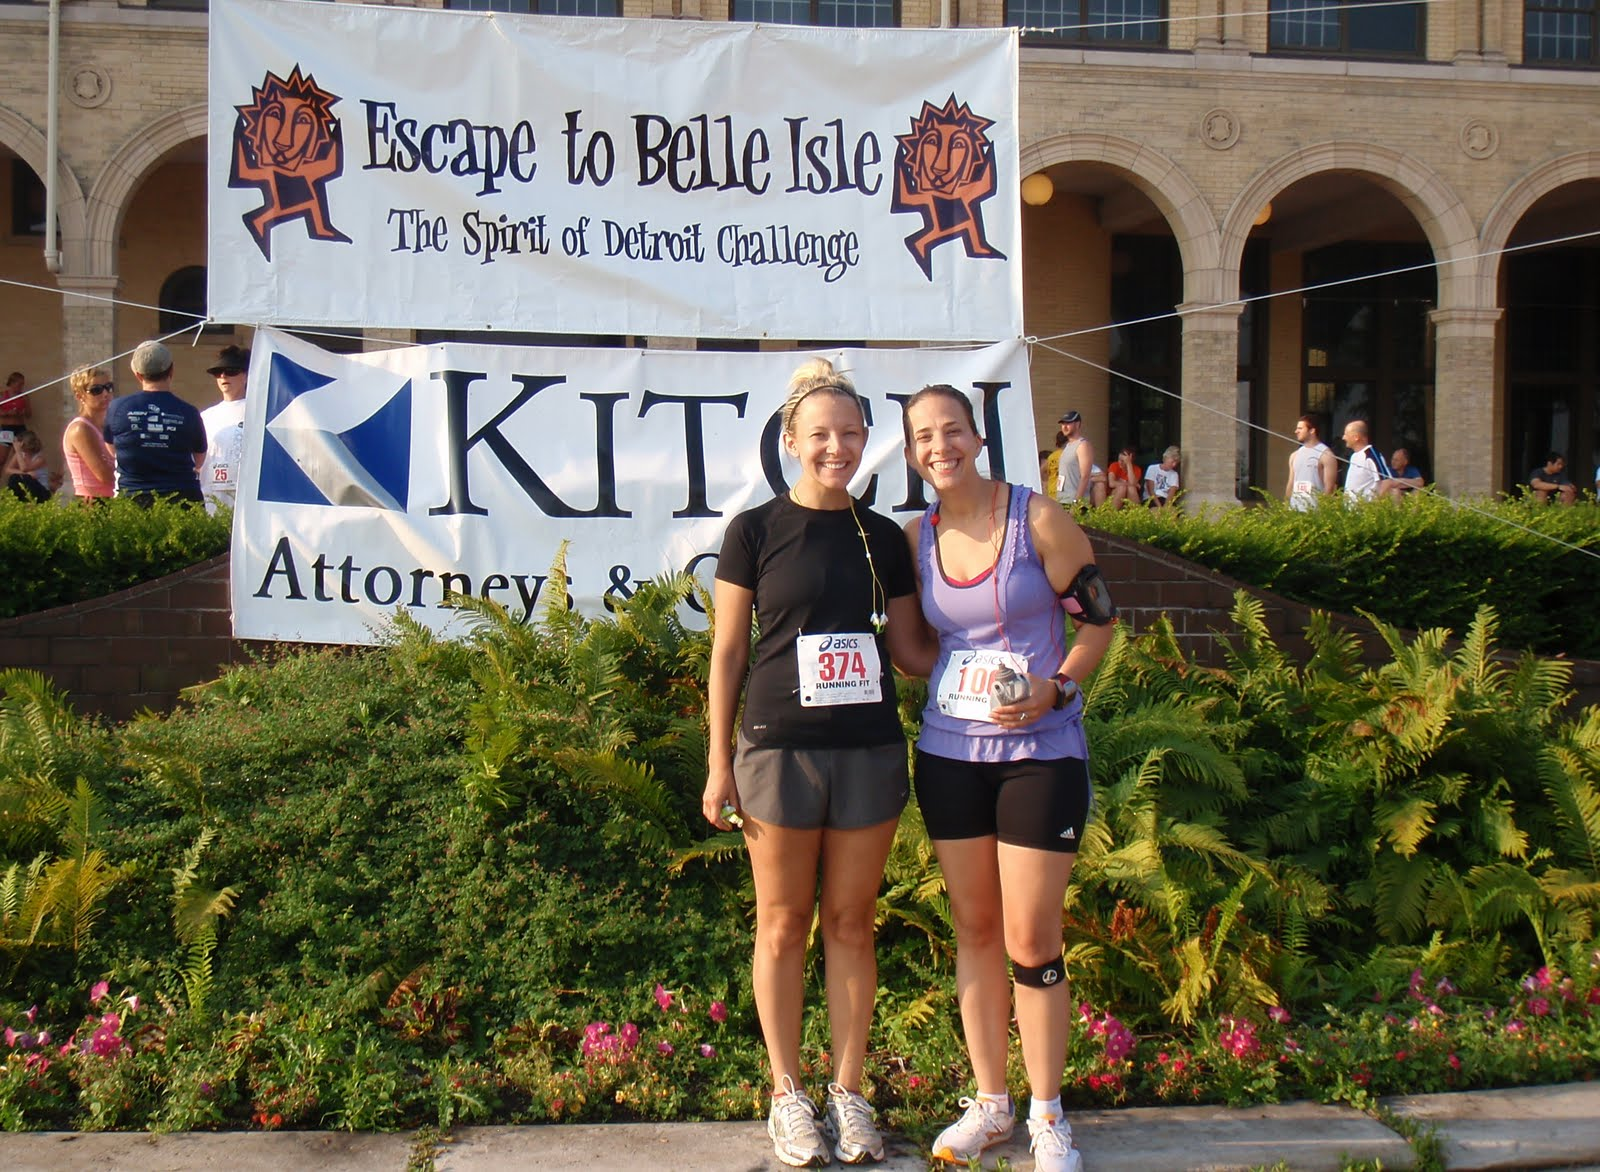 Escape to Belle Isle 10k Recap